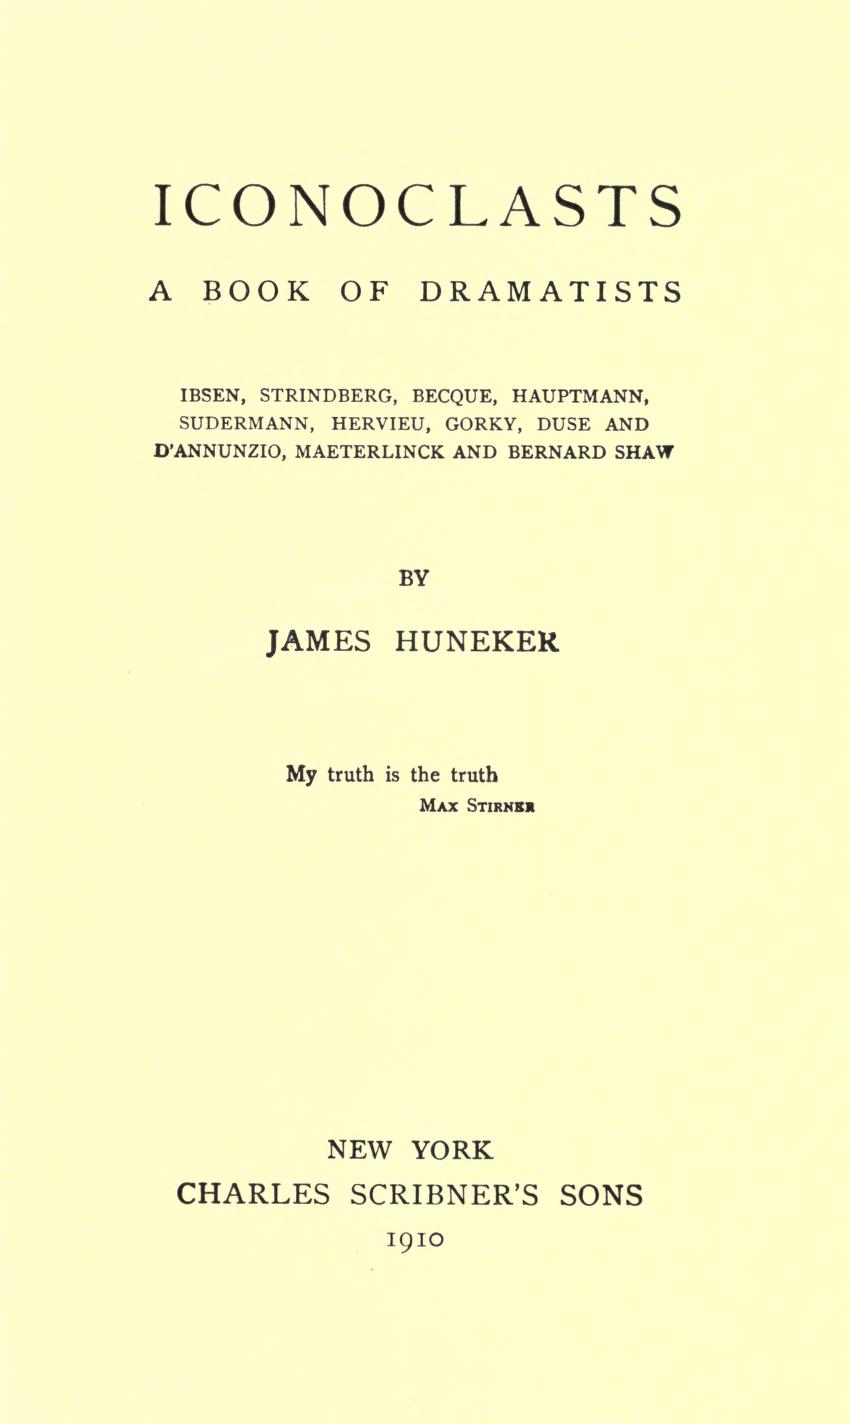 The project gutenberg ebook of iconoclasts by james huneker iconoclasts a book of dramatists fandeluxe Images